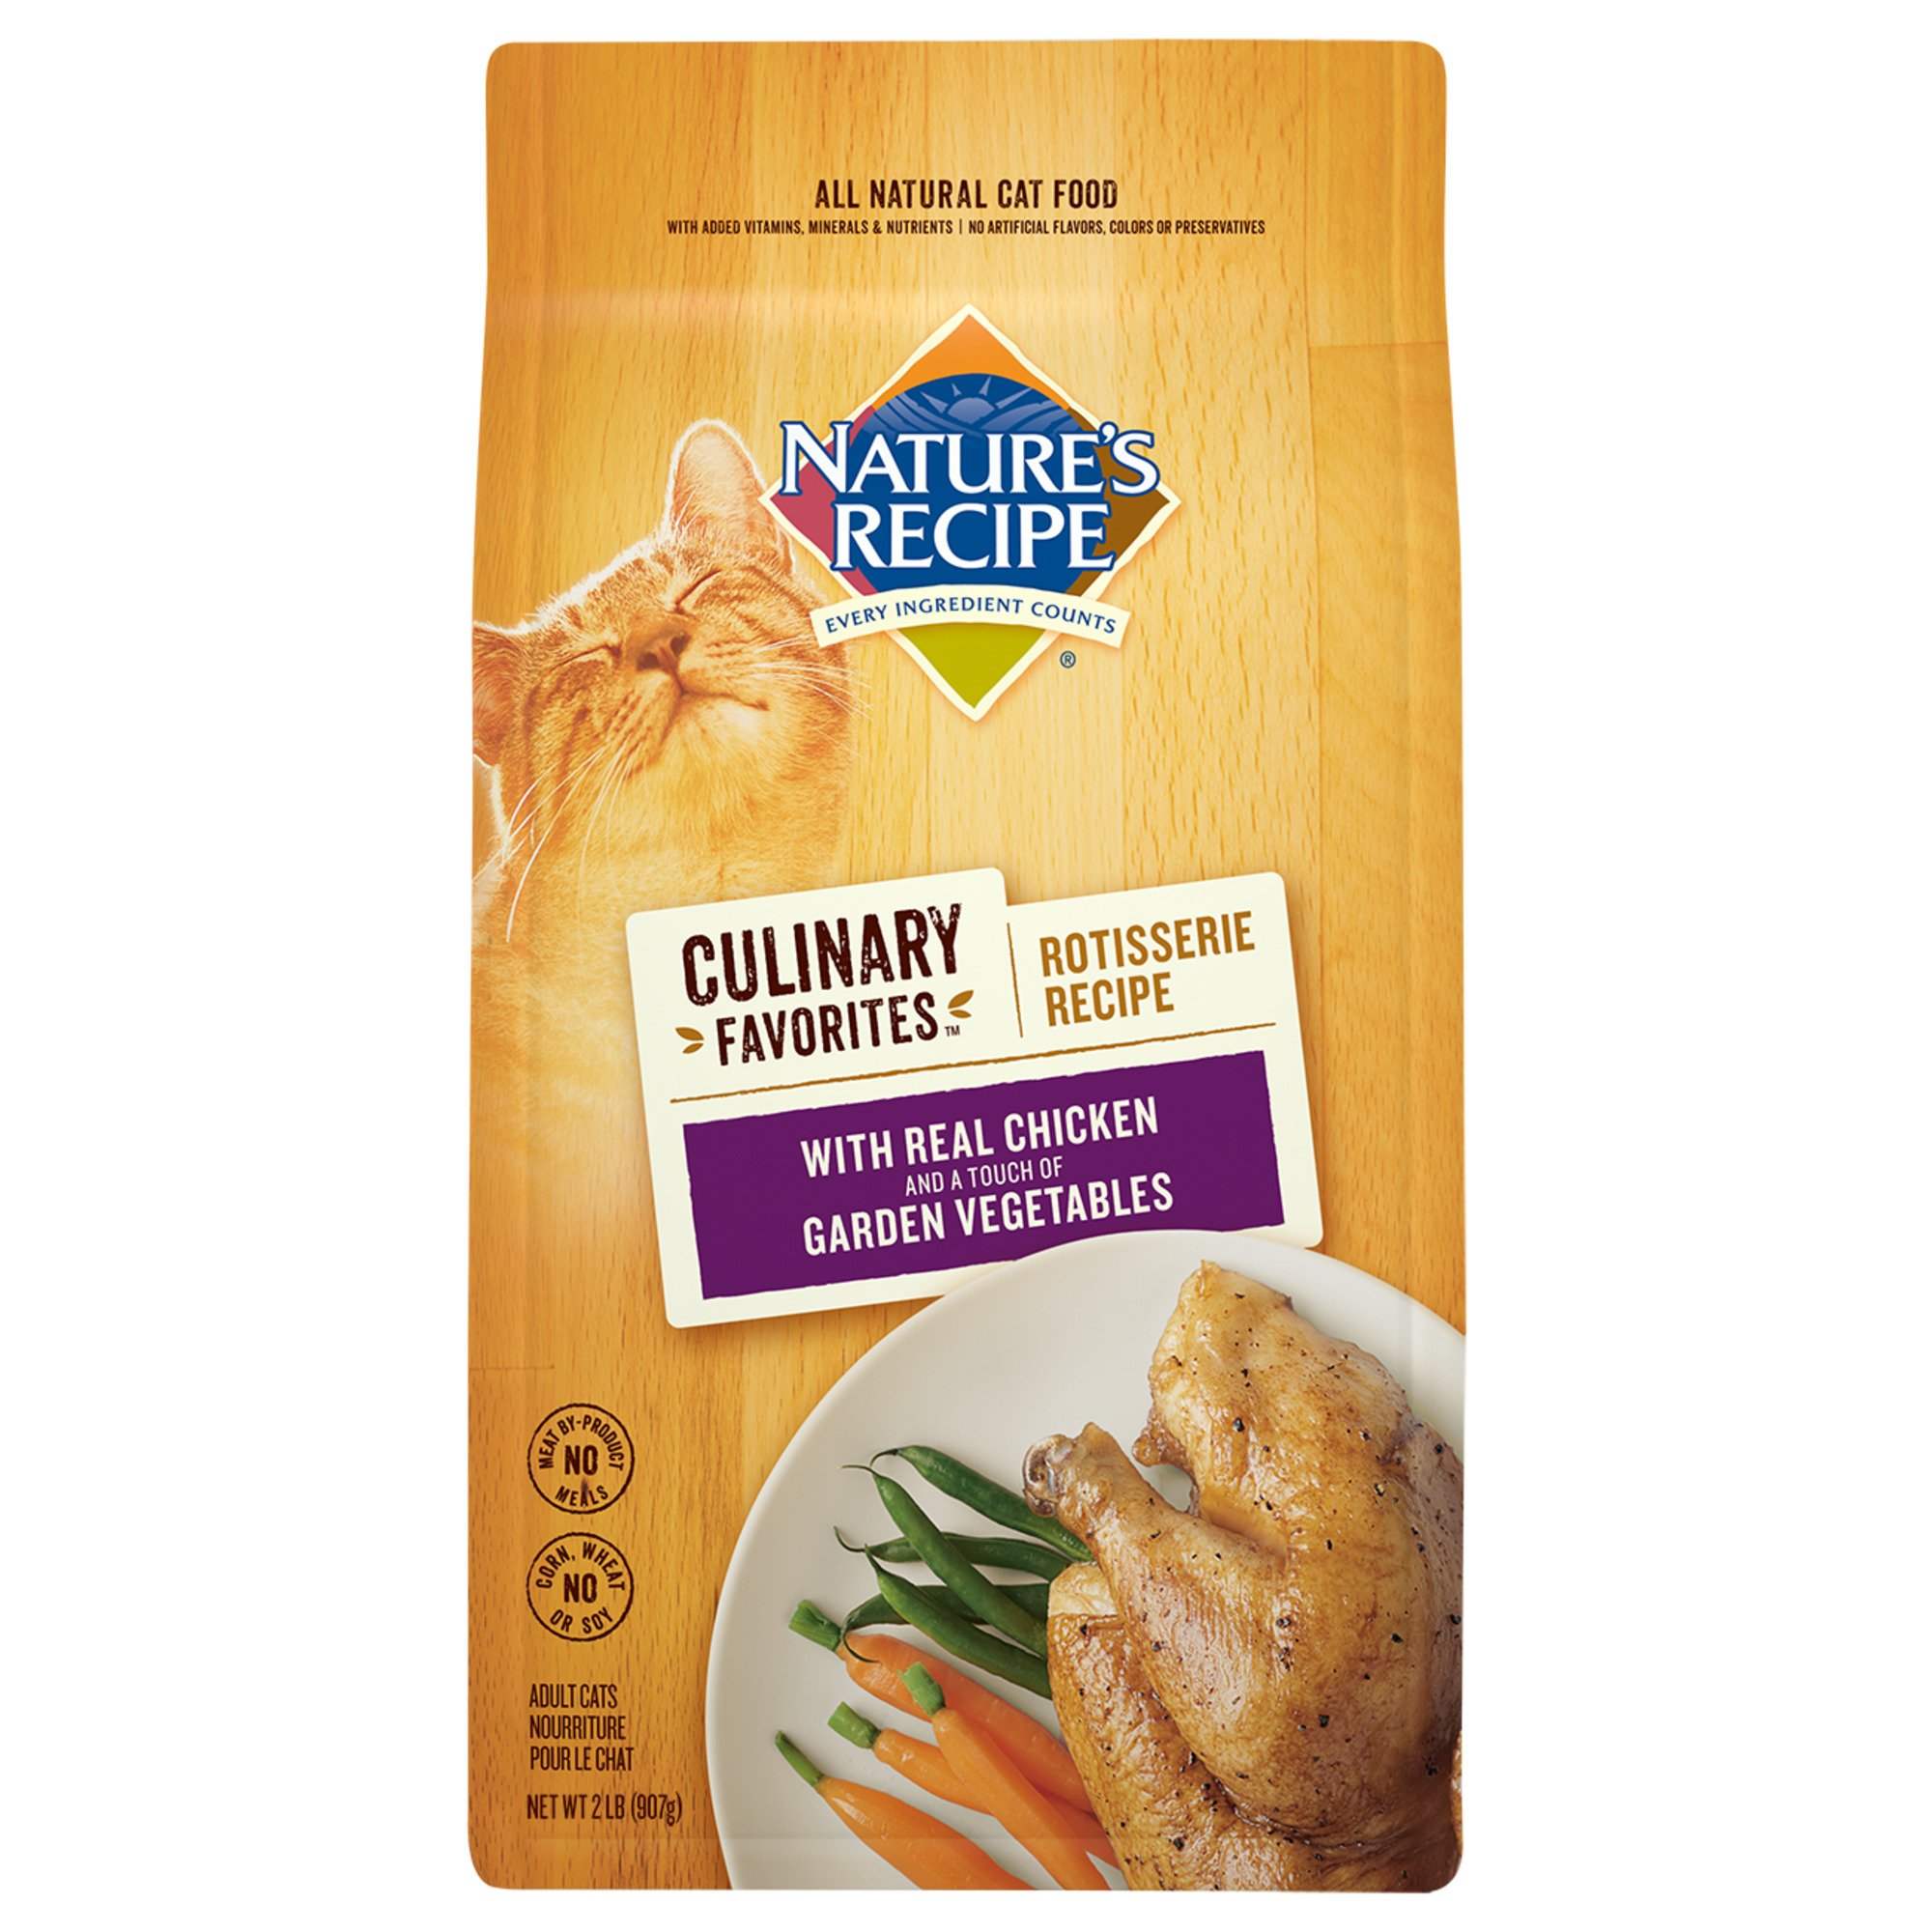 Nature's Recipe Culinary Favorites Rotisserie Chicken & Garden Vegetables Dry Cat Food